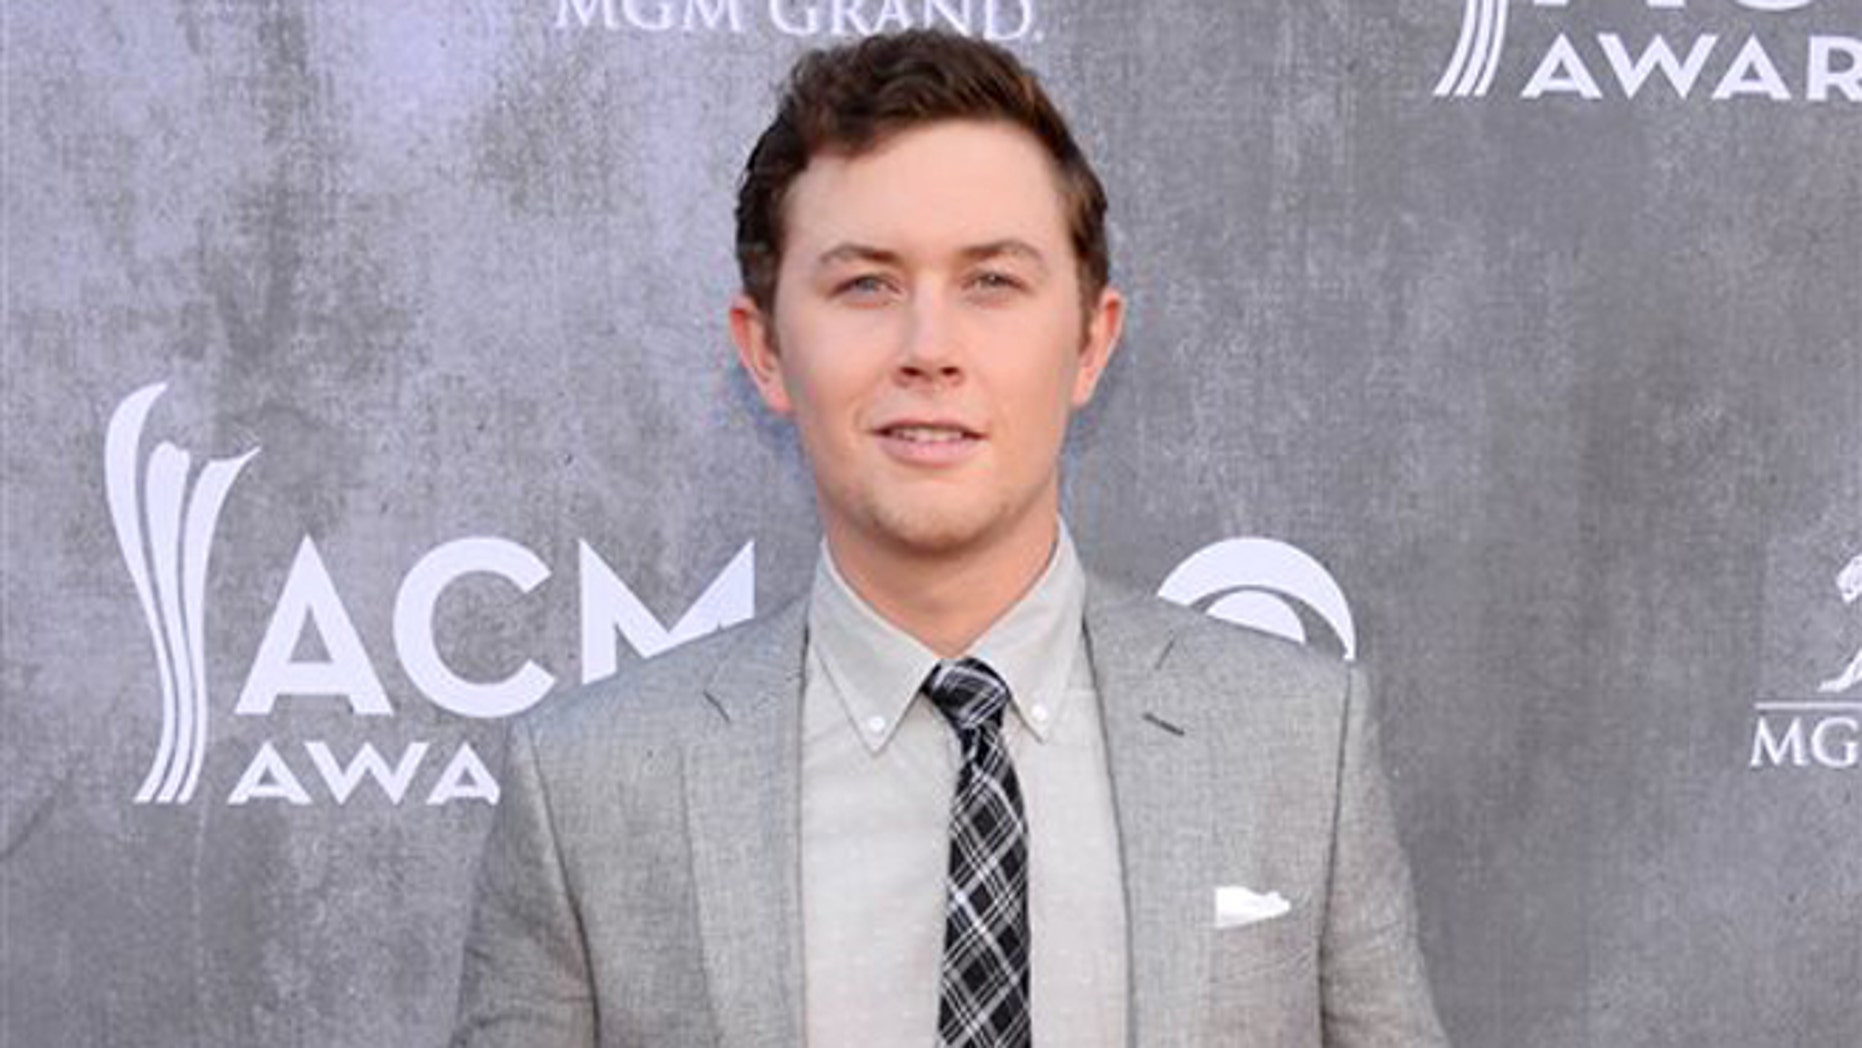 Scotty McCreery at the 49th annual Academy of Country Music Awards in Las Vegas, on April 6, 2014.